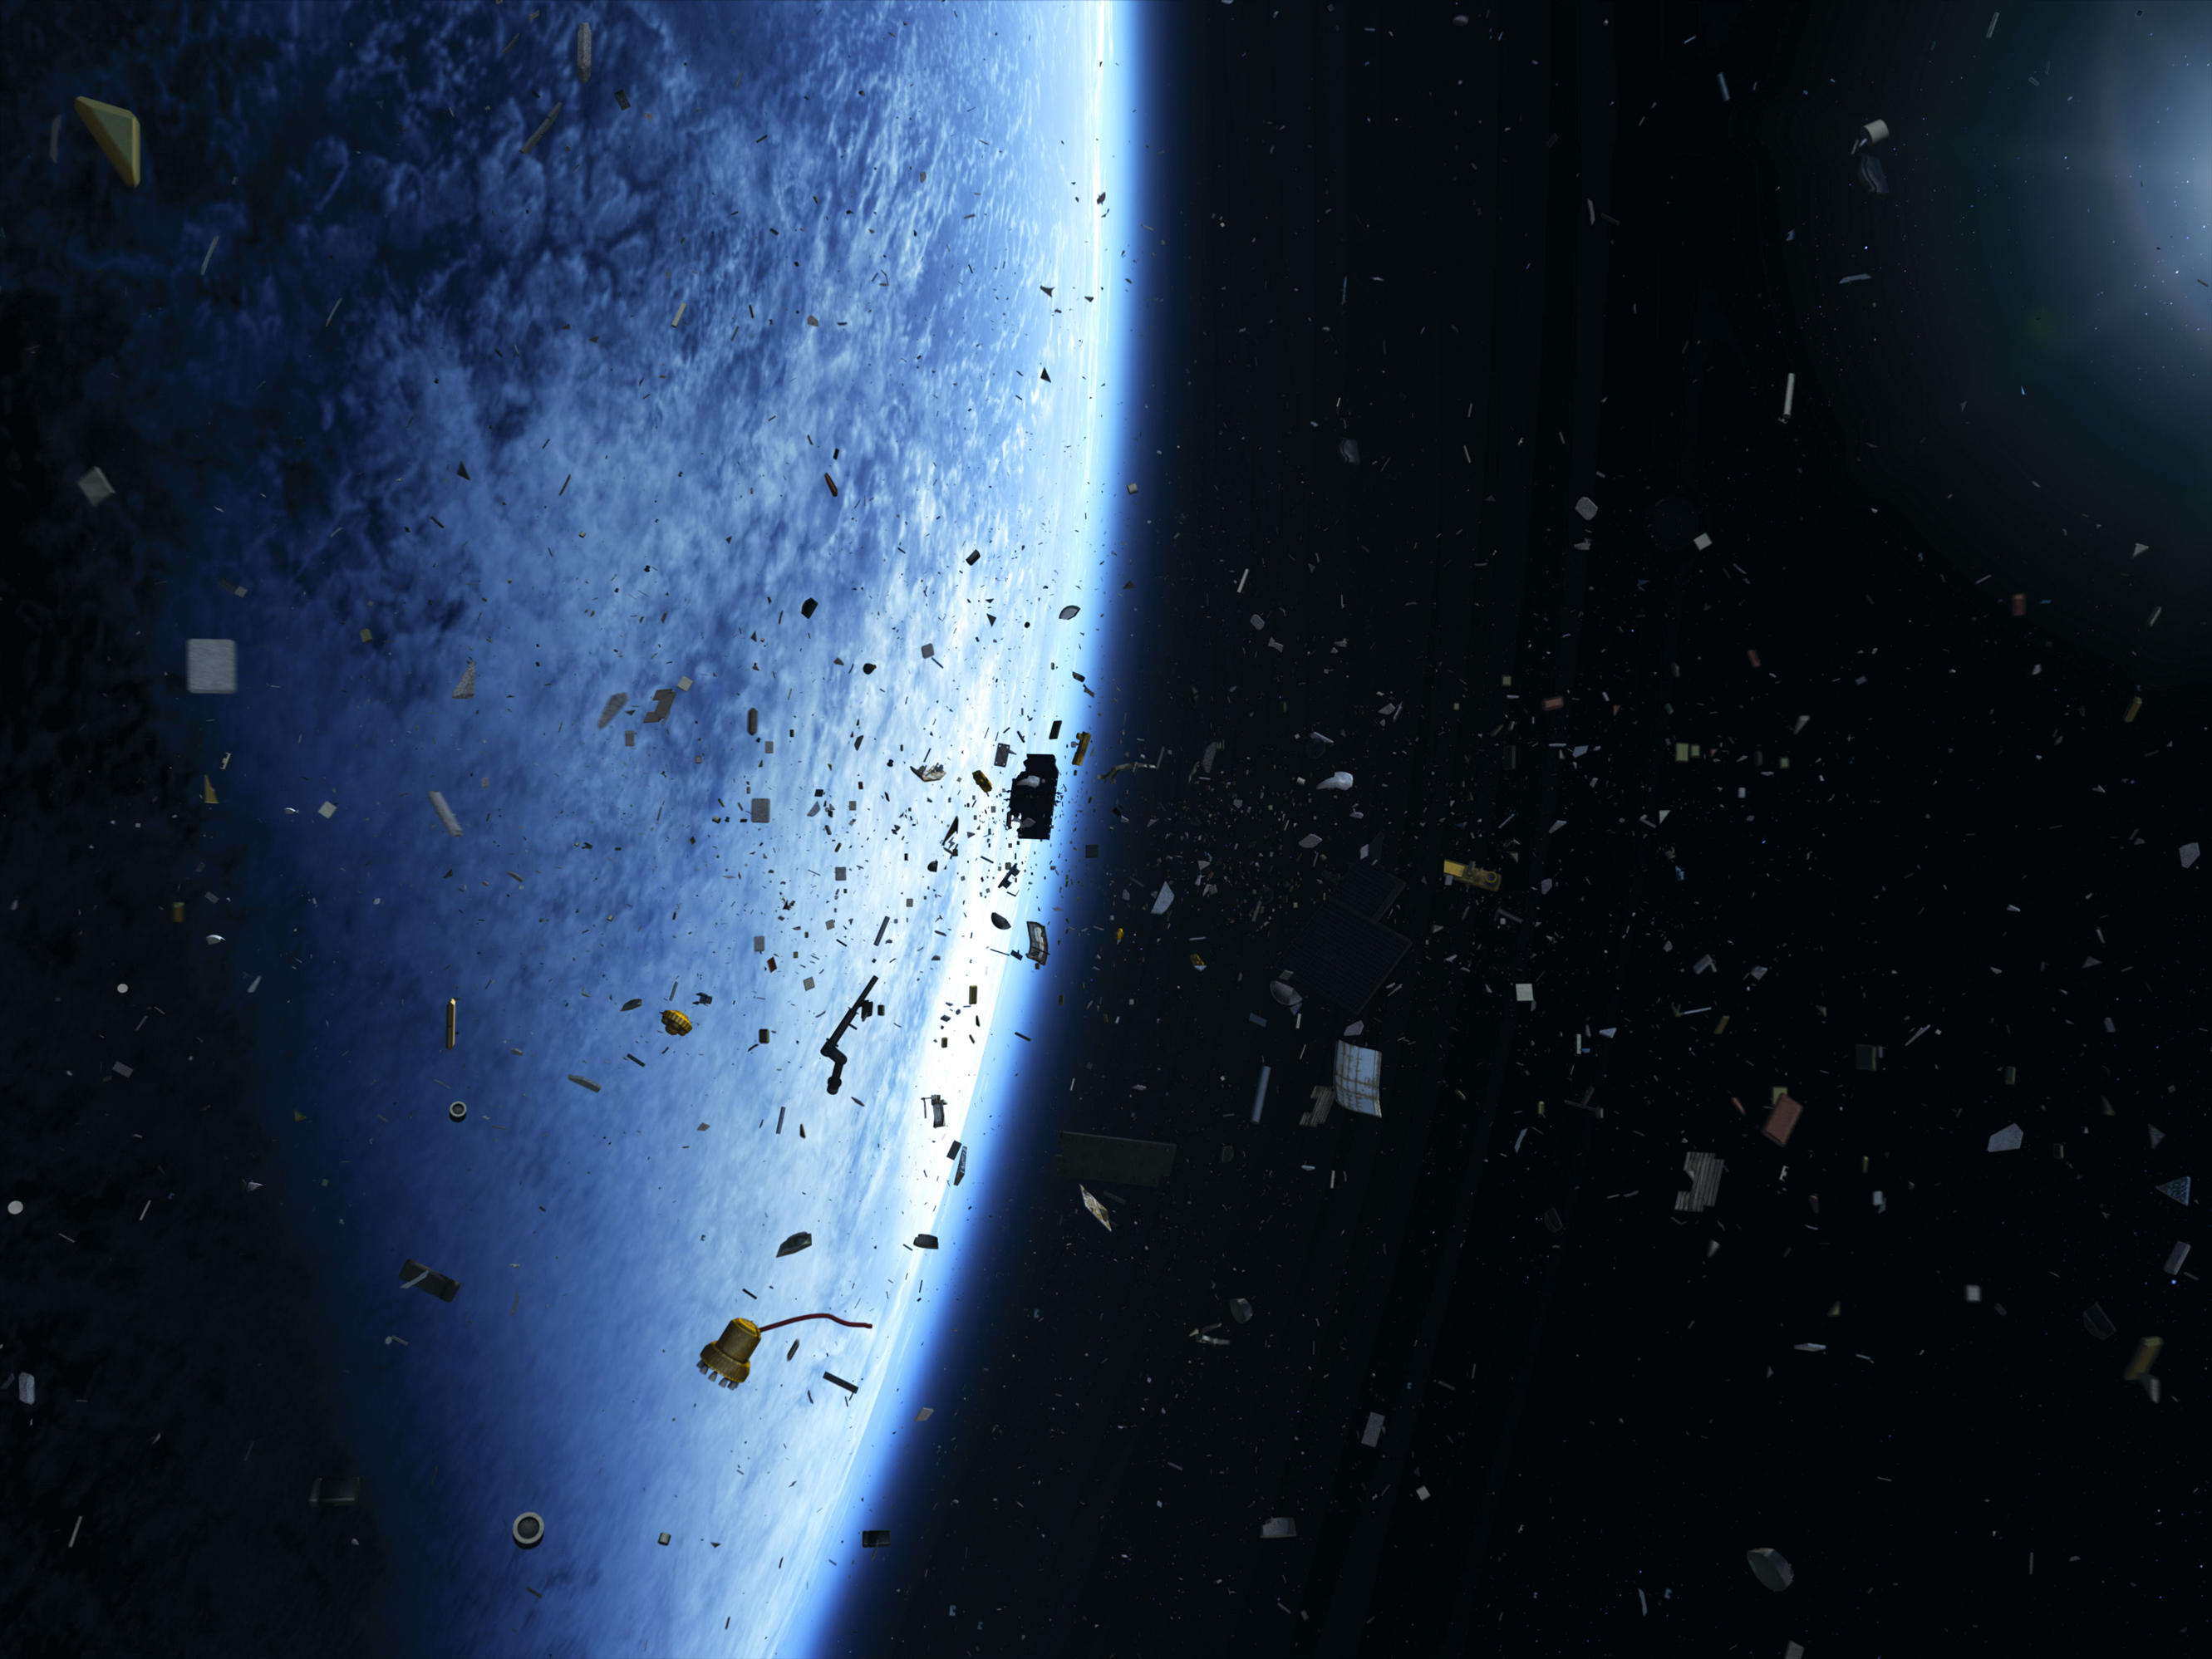 NASA's Interest in Debris Removal Limited to Tech Demos